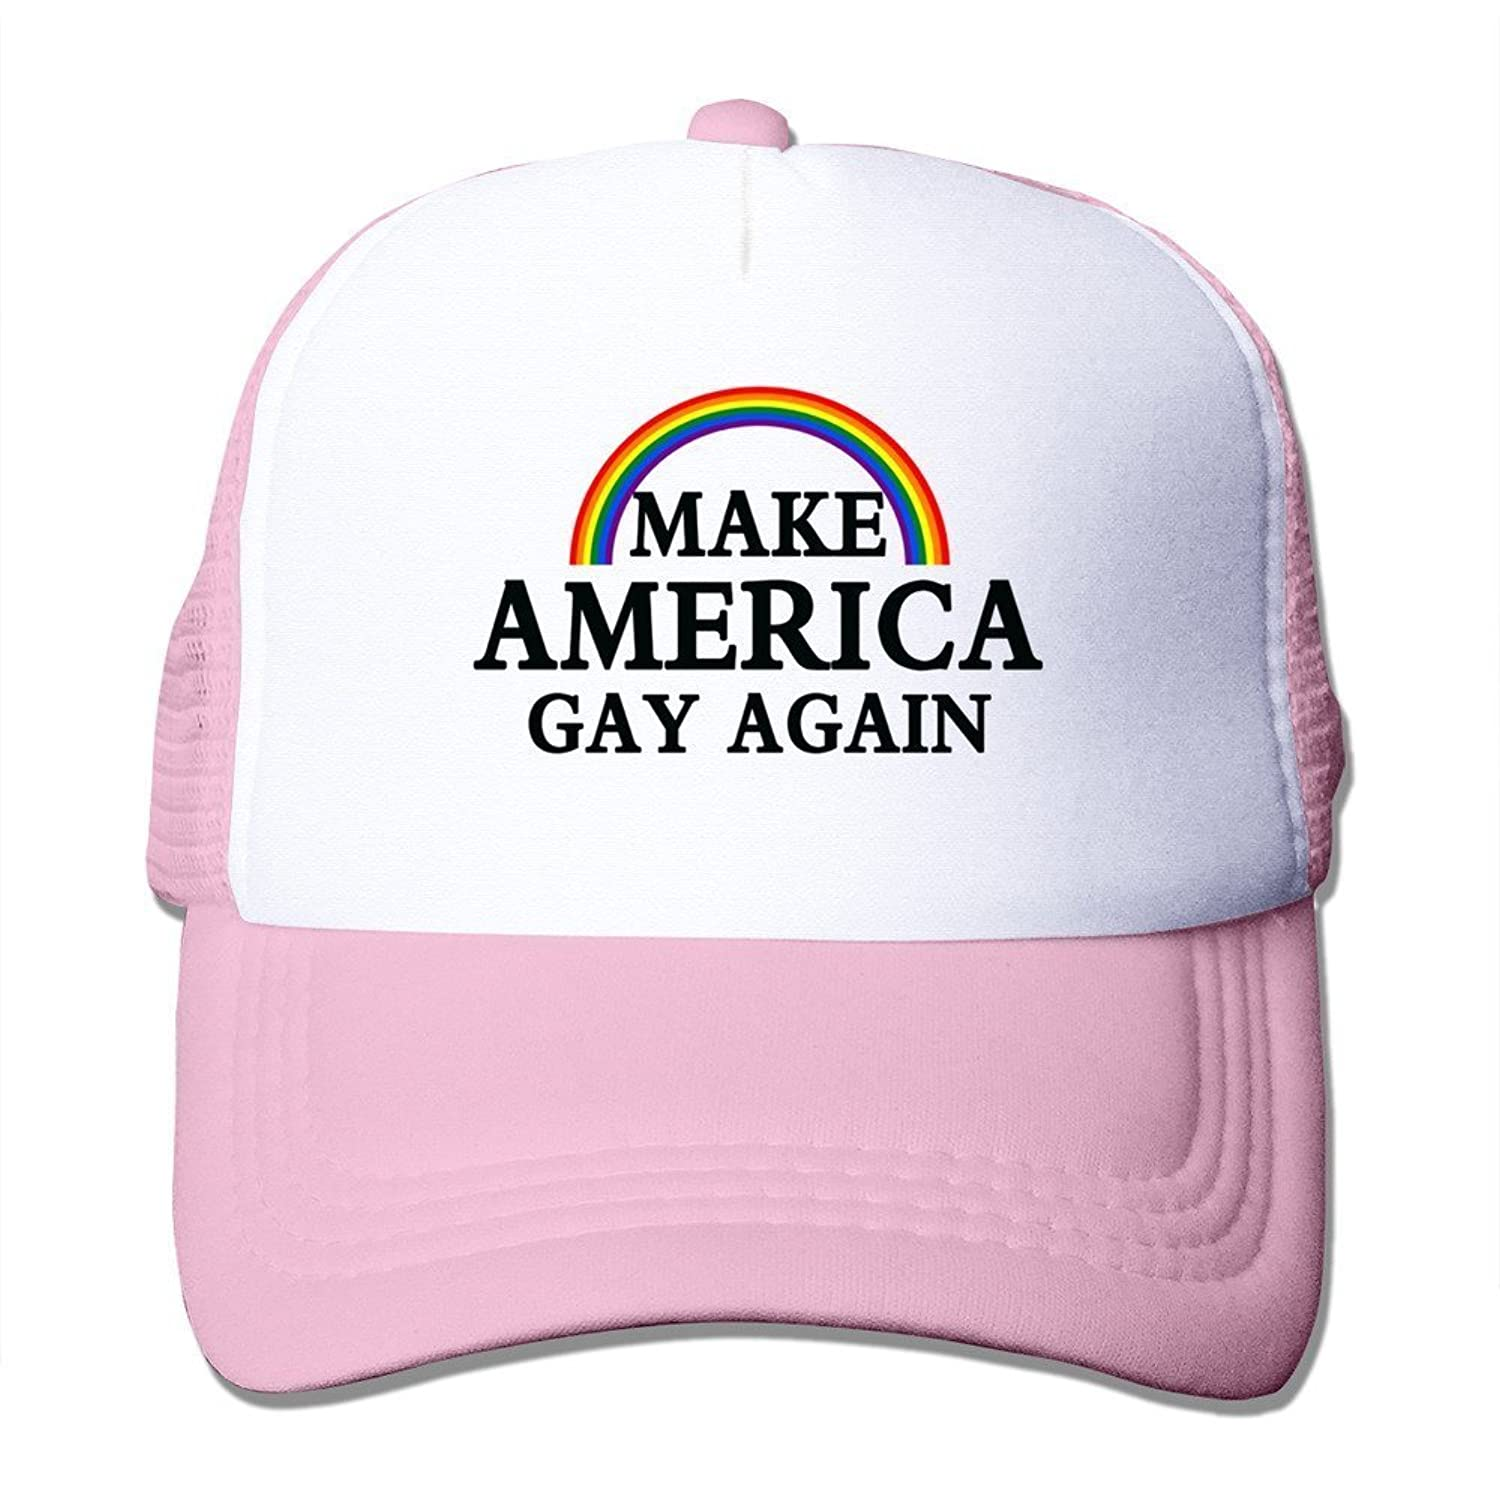 and gay